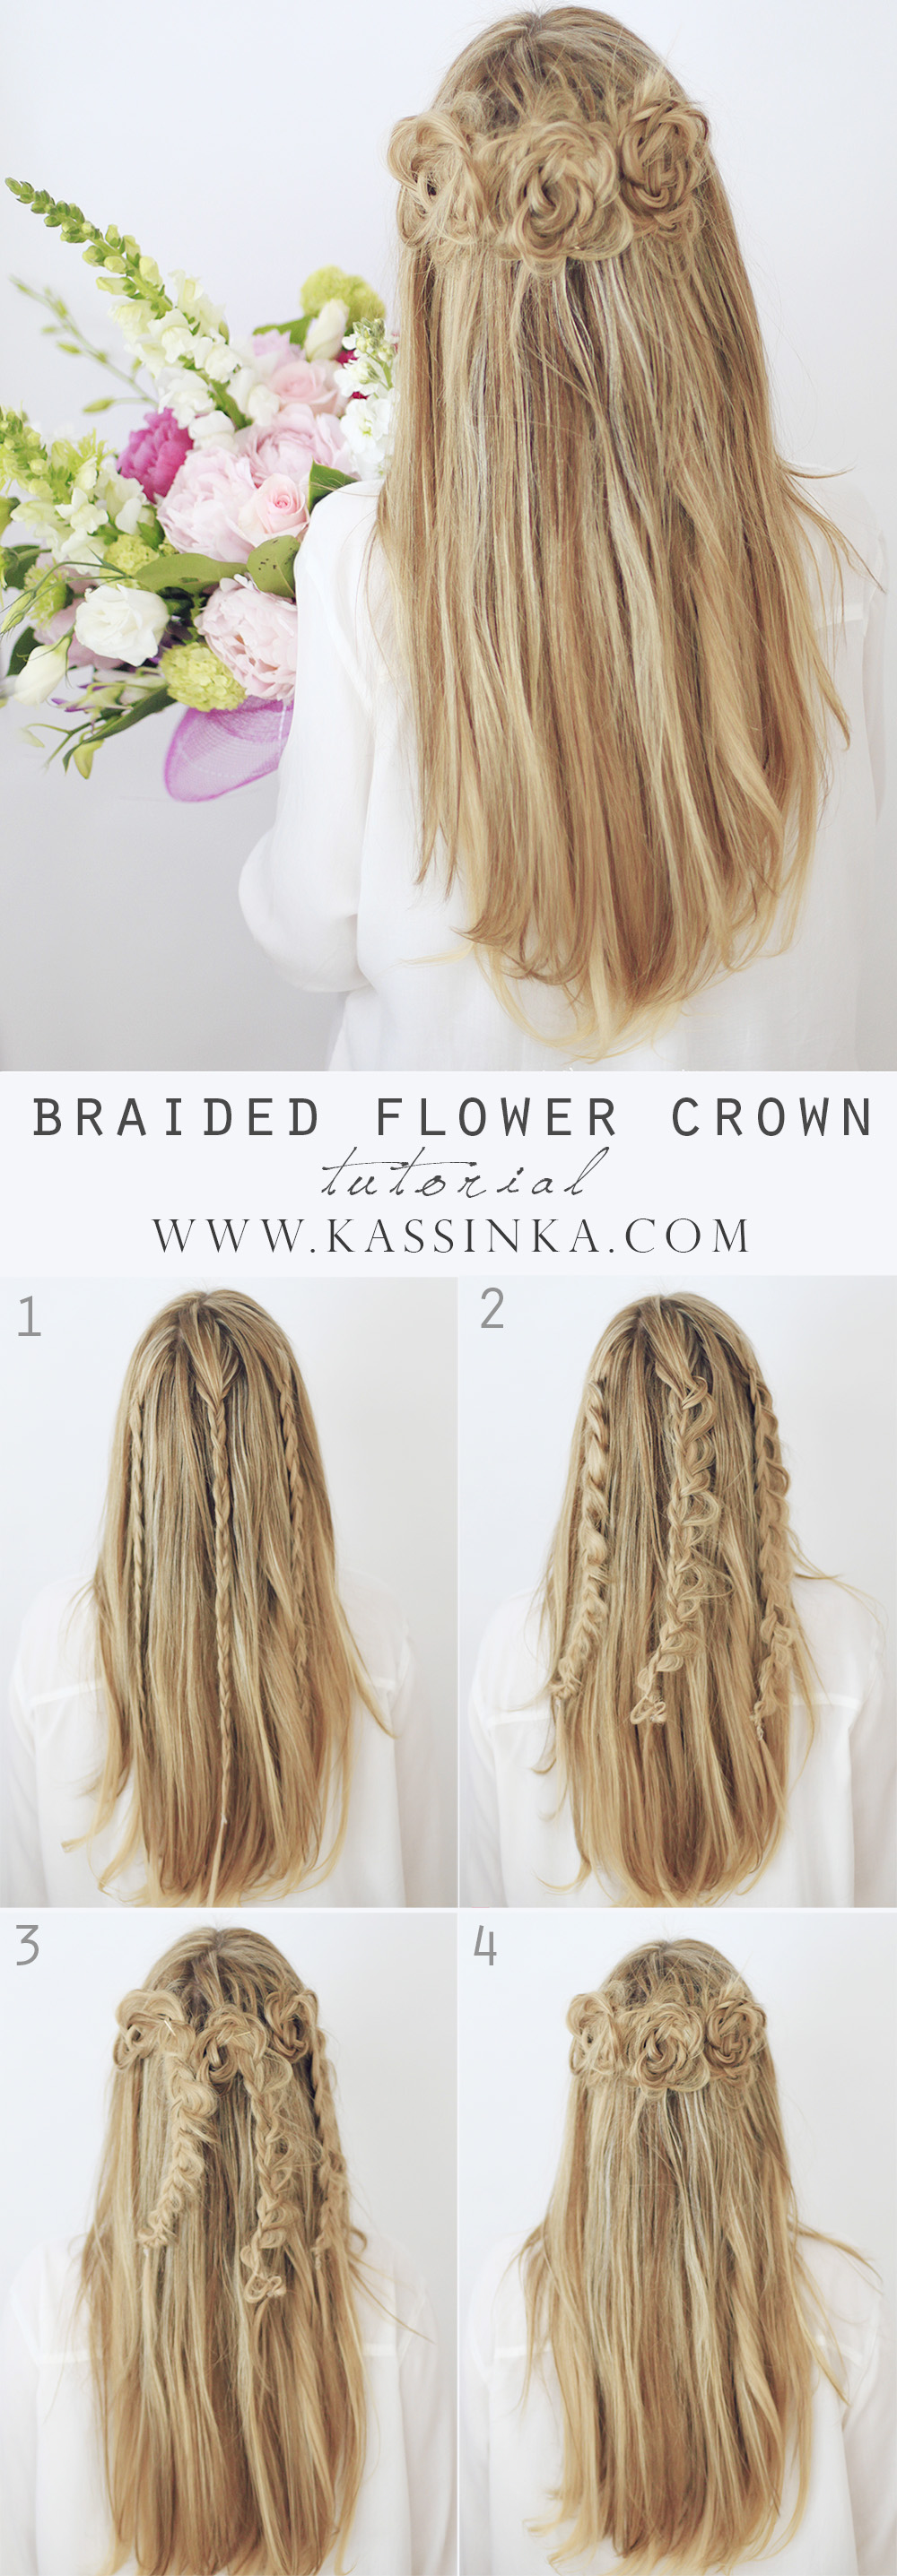 Braided Flower Crown Hair Tutorial Kassinka